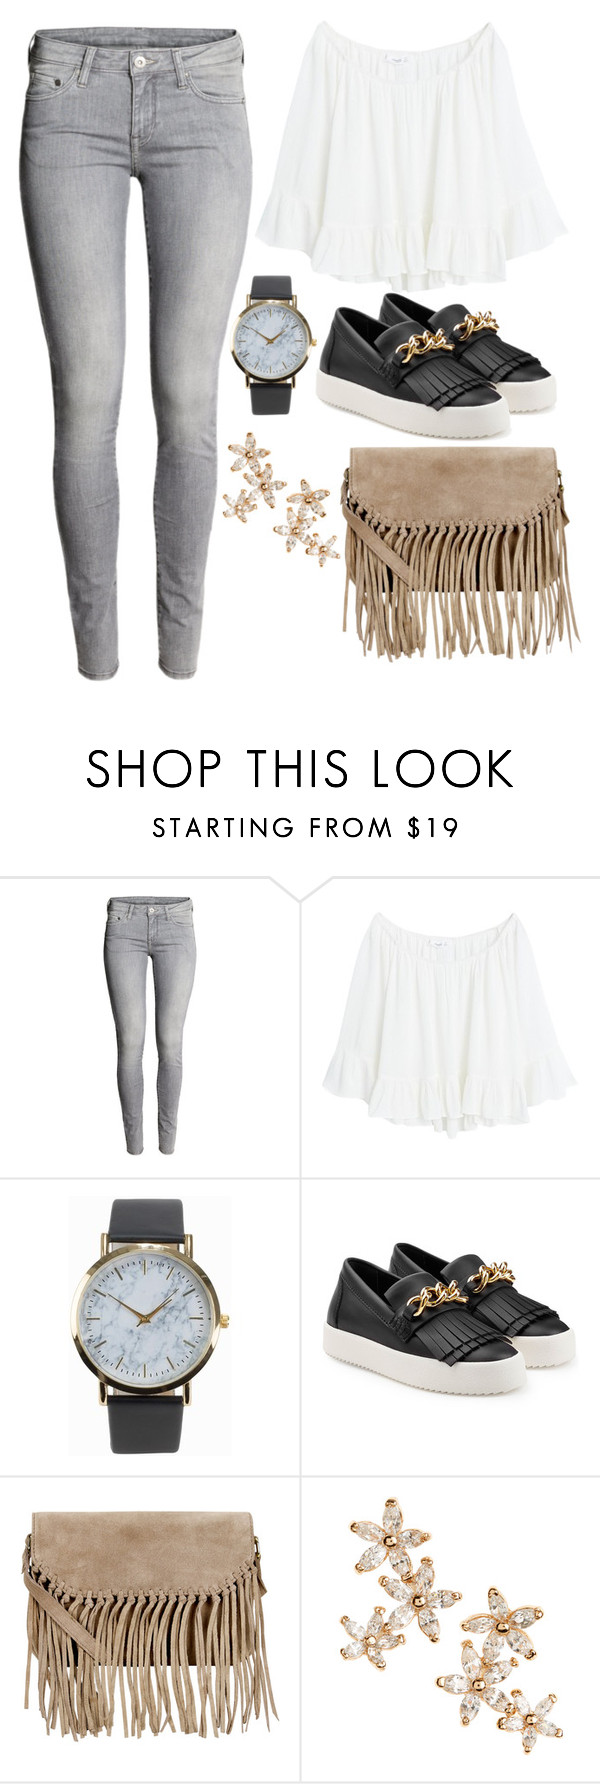 """""""Untitled #11366"""" by beatrizibelo ❤ liked on Polyvore featuring H&M, MANGO, NLY Accessories, Giuseppe Zanotti, Accessorize and Bonheur"""